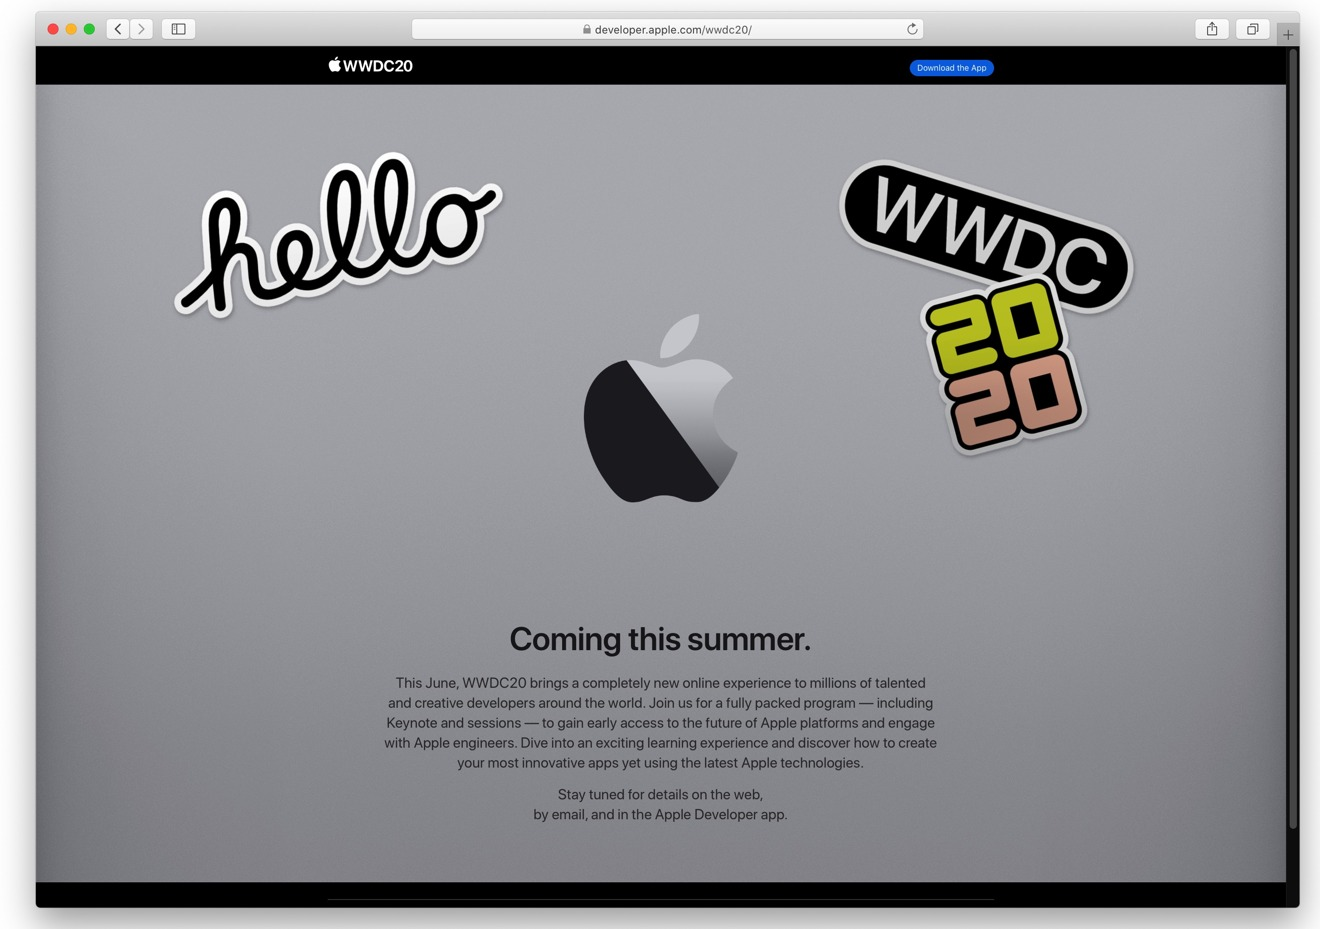 The entire WWDC 2020 page, as of March 13, 2020